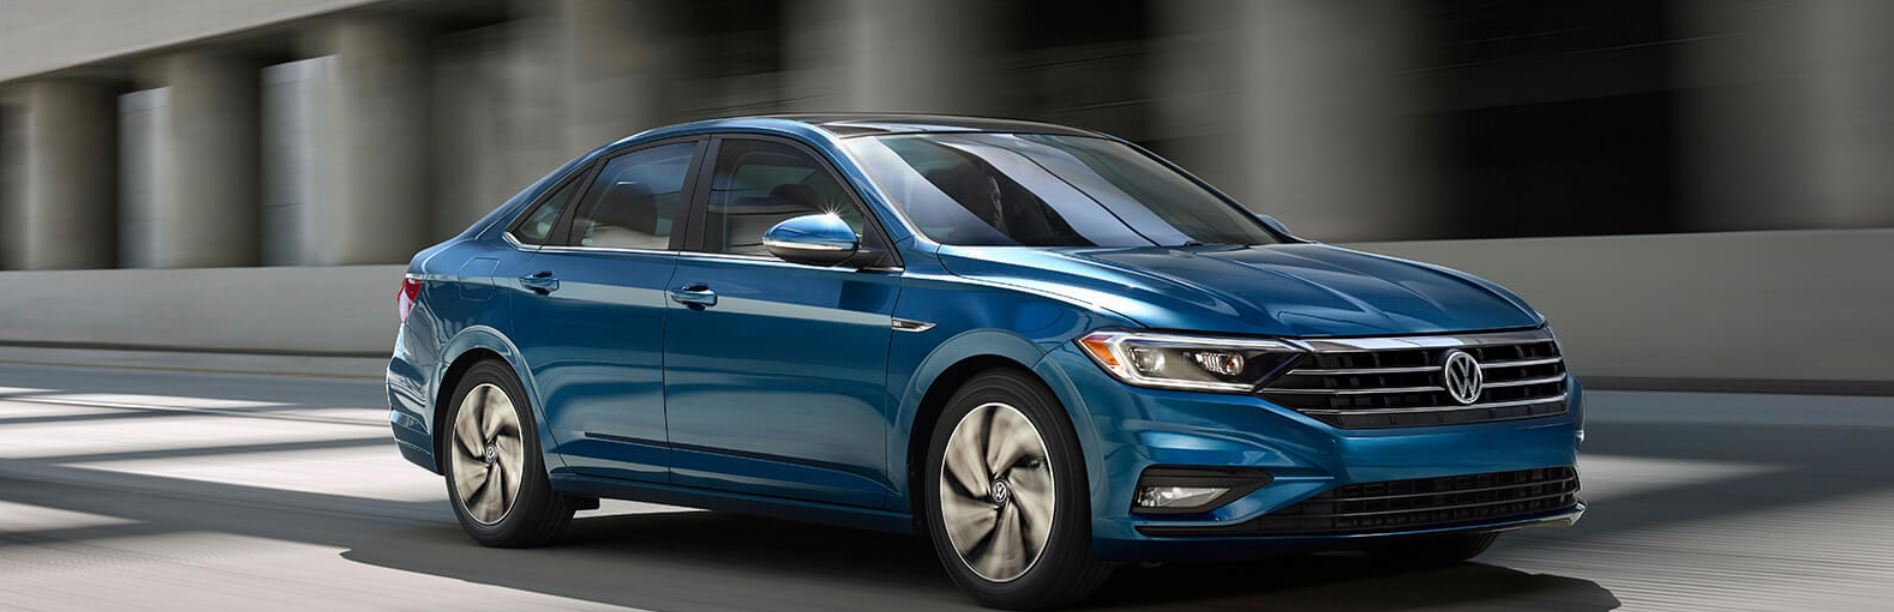 2019 Volkswagen Jetta for Sale near Cape May Court House, NJ